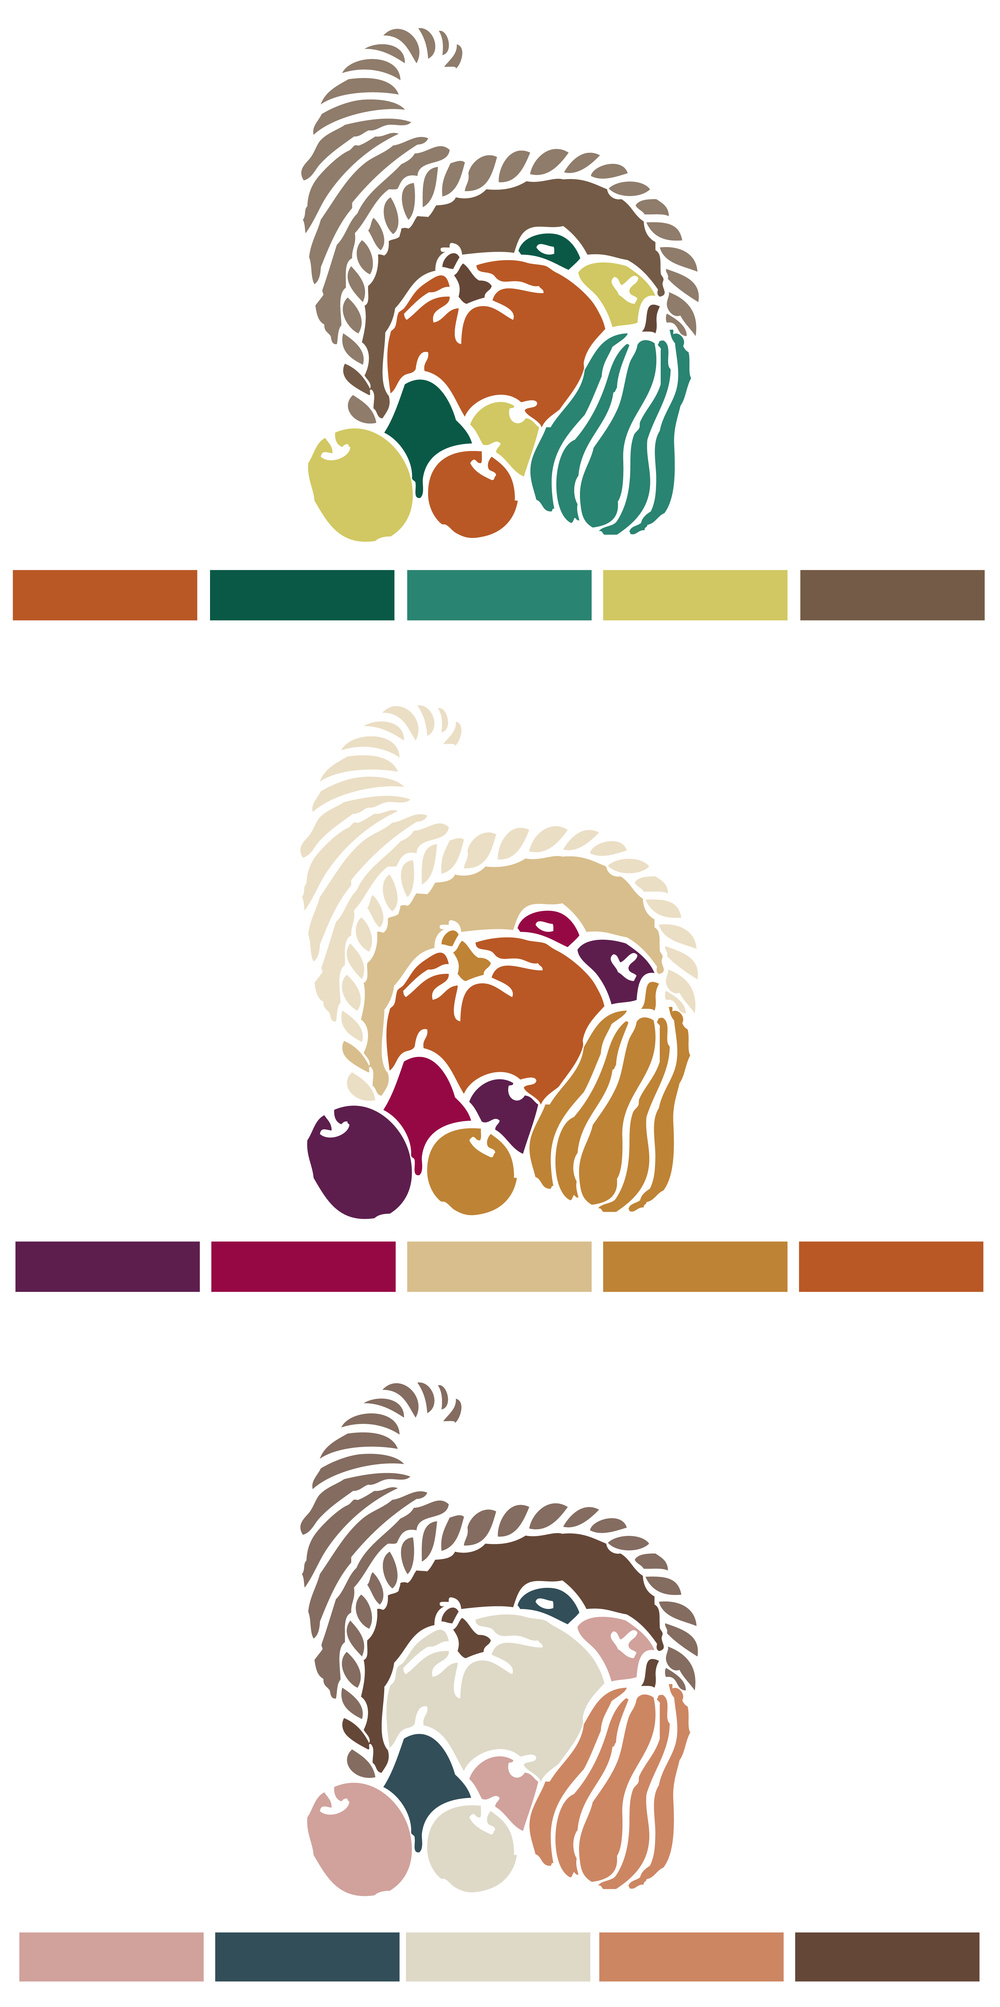 Hue & Tone Creative - fall/Thanksgiving color palettes